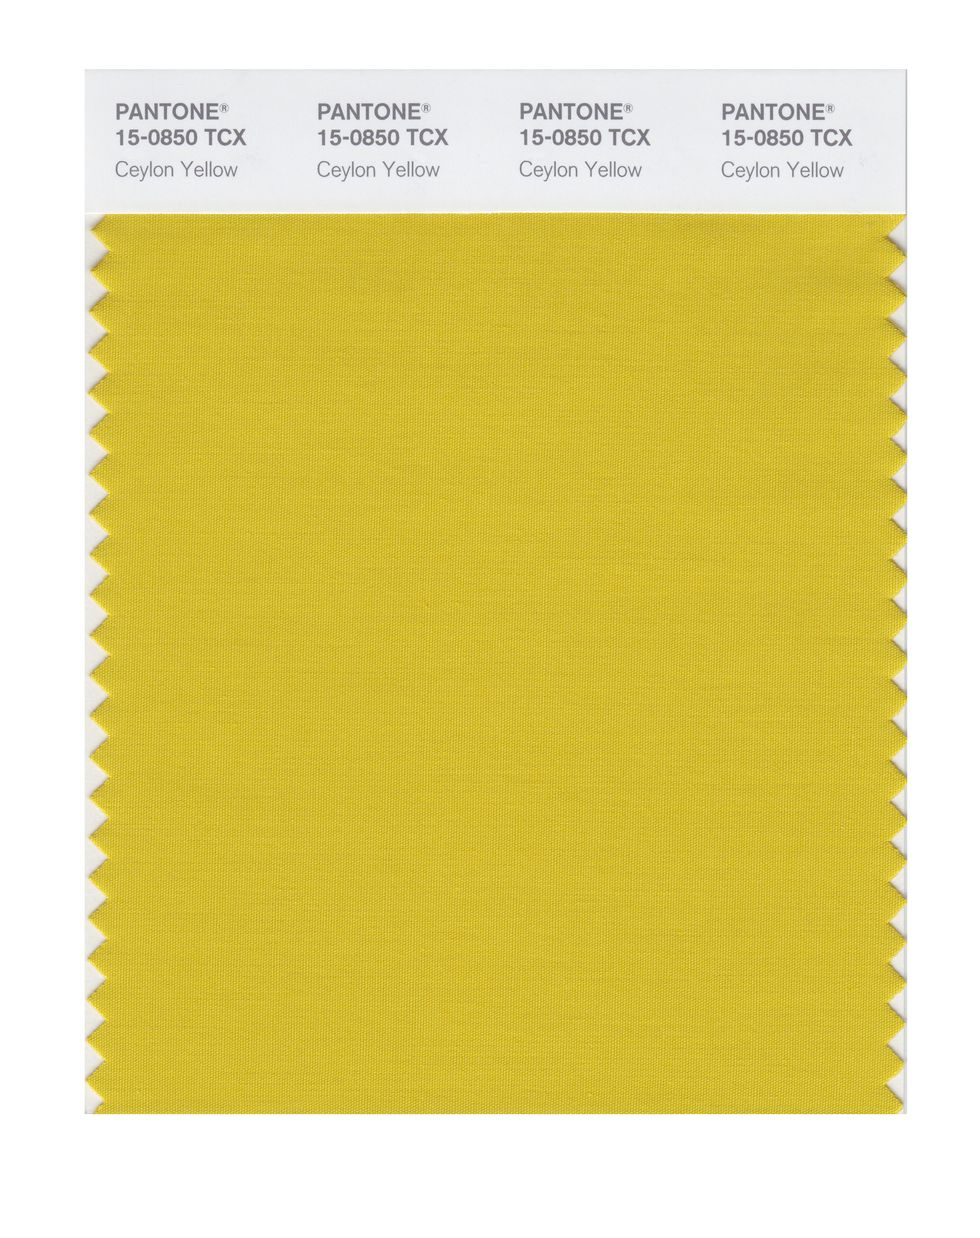 ceylon yellow.jpg